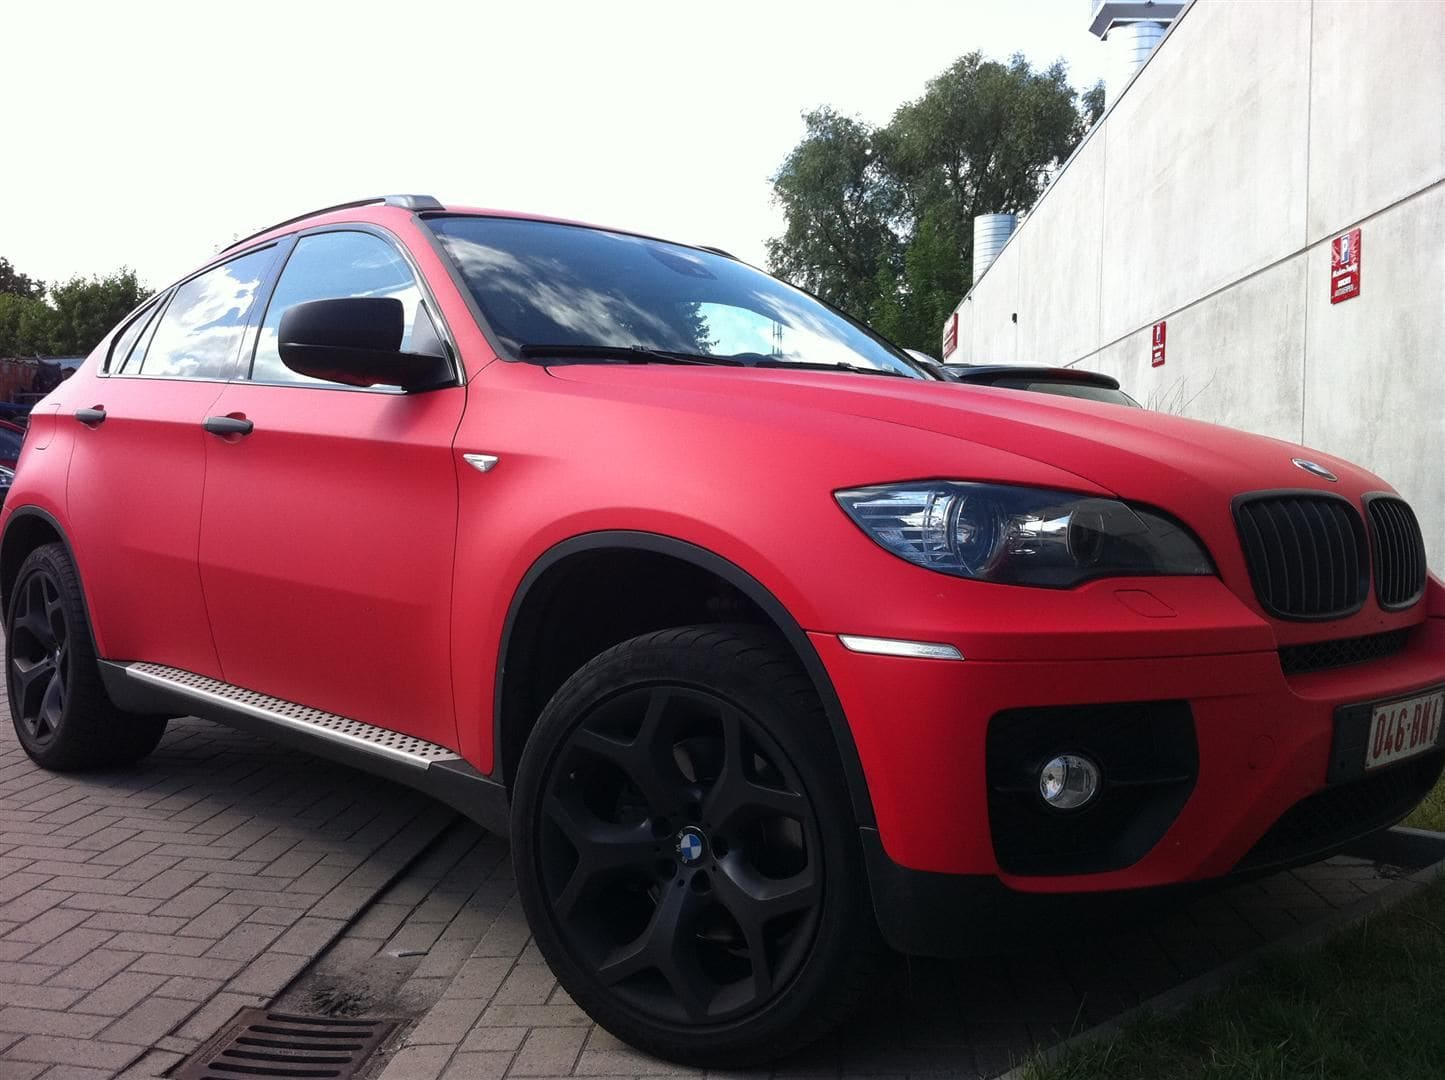 BMW X6 met Mat Rode Wrap, Carwrapping door Wrapmyride.nu Foto-nr:5454, ©2020